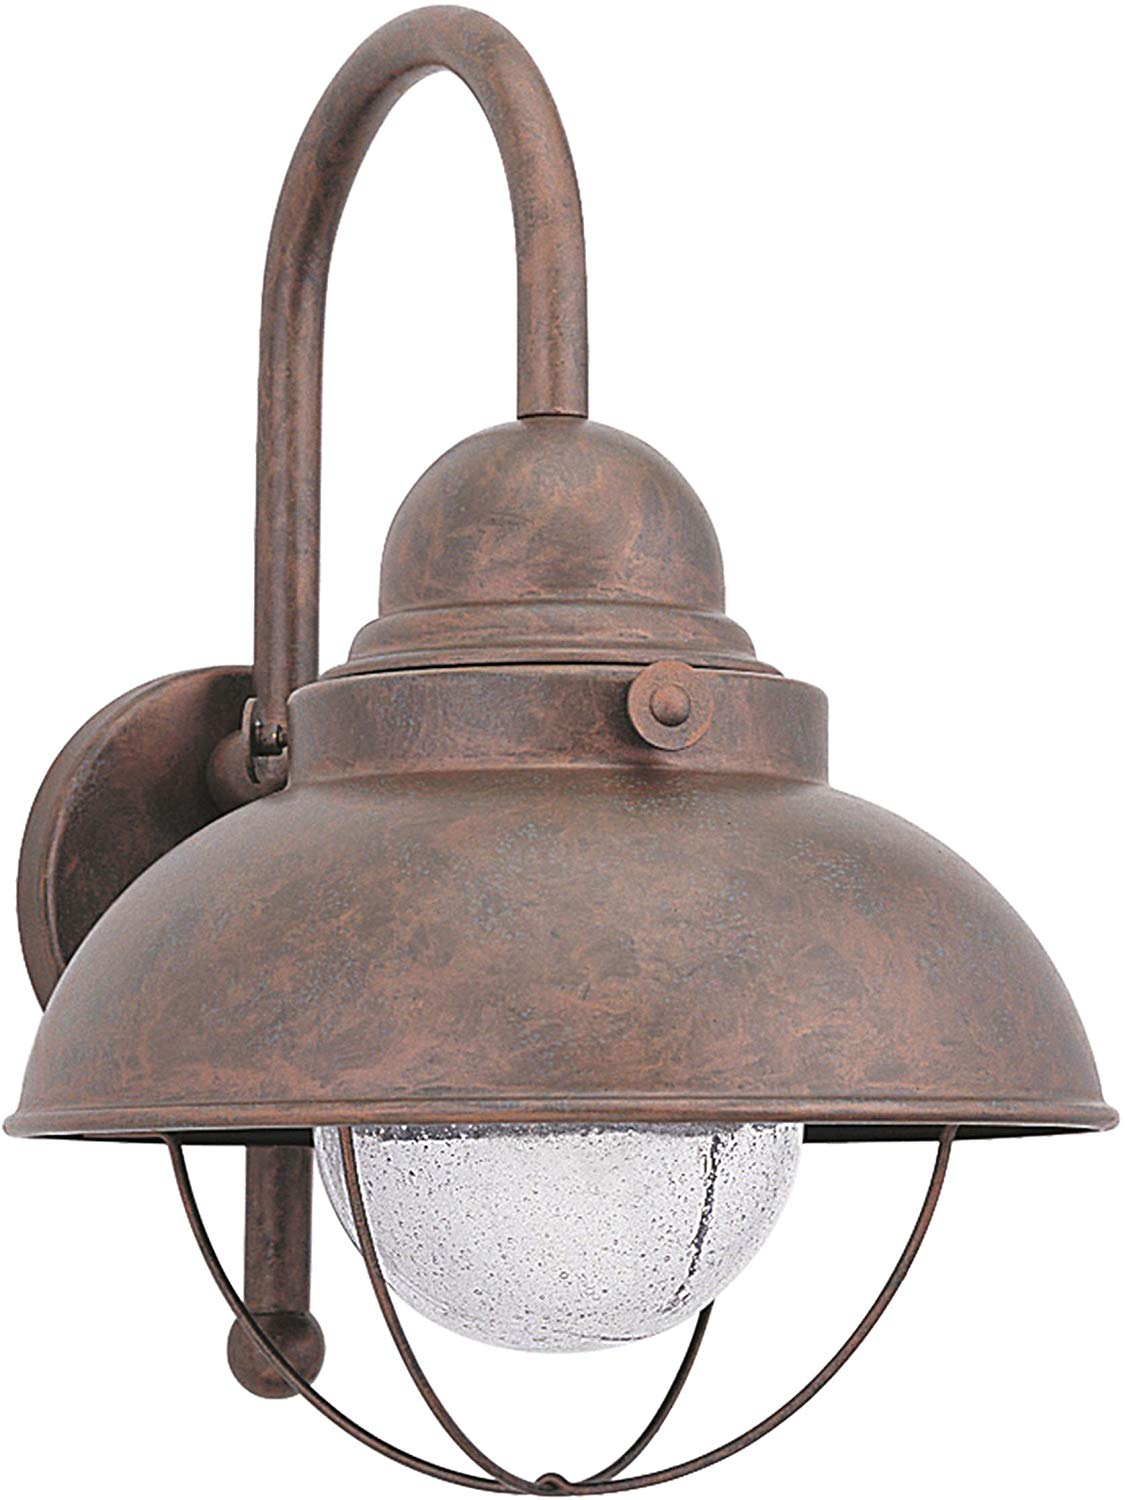 Sea Gull Lighting 887193S-44 Sebring Outdoor Wall Sconce, 1-Light LED 14 Watts, Weathered Copper